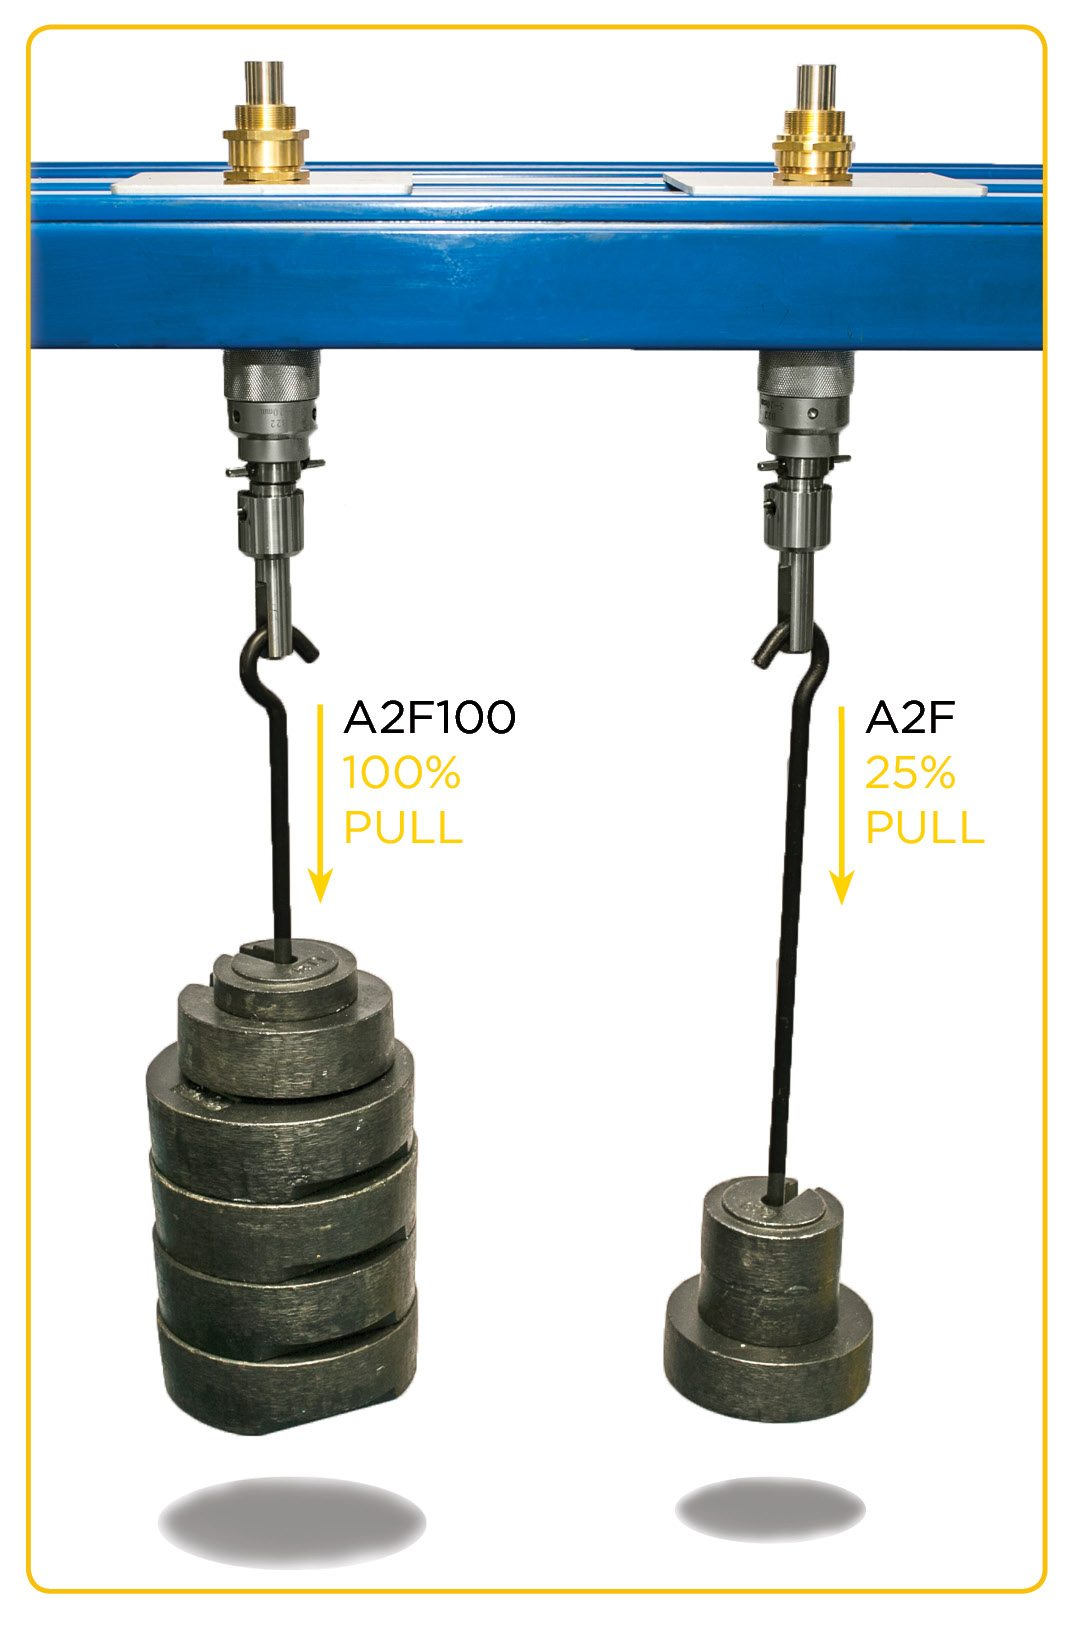 A2F100 1005 Pull Test Compared to 25% Pull Test for A2F Cable Glands